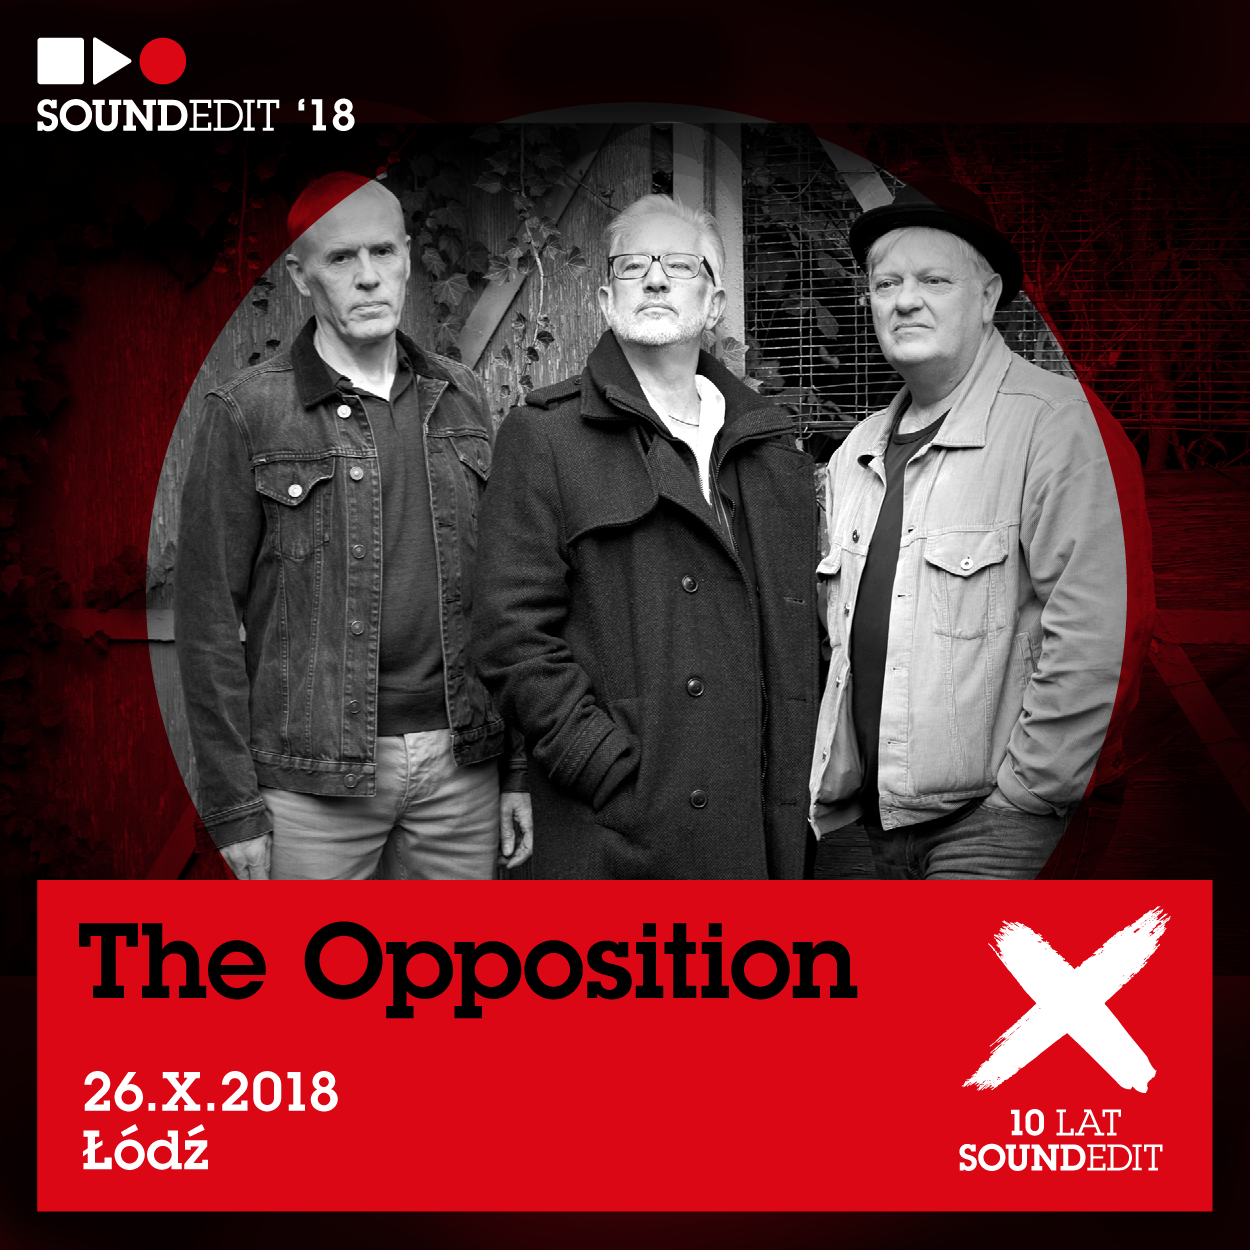 10 lat Soundedit - The Opposition